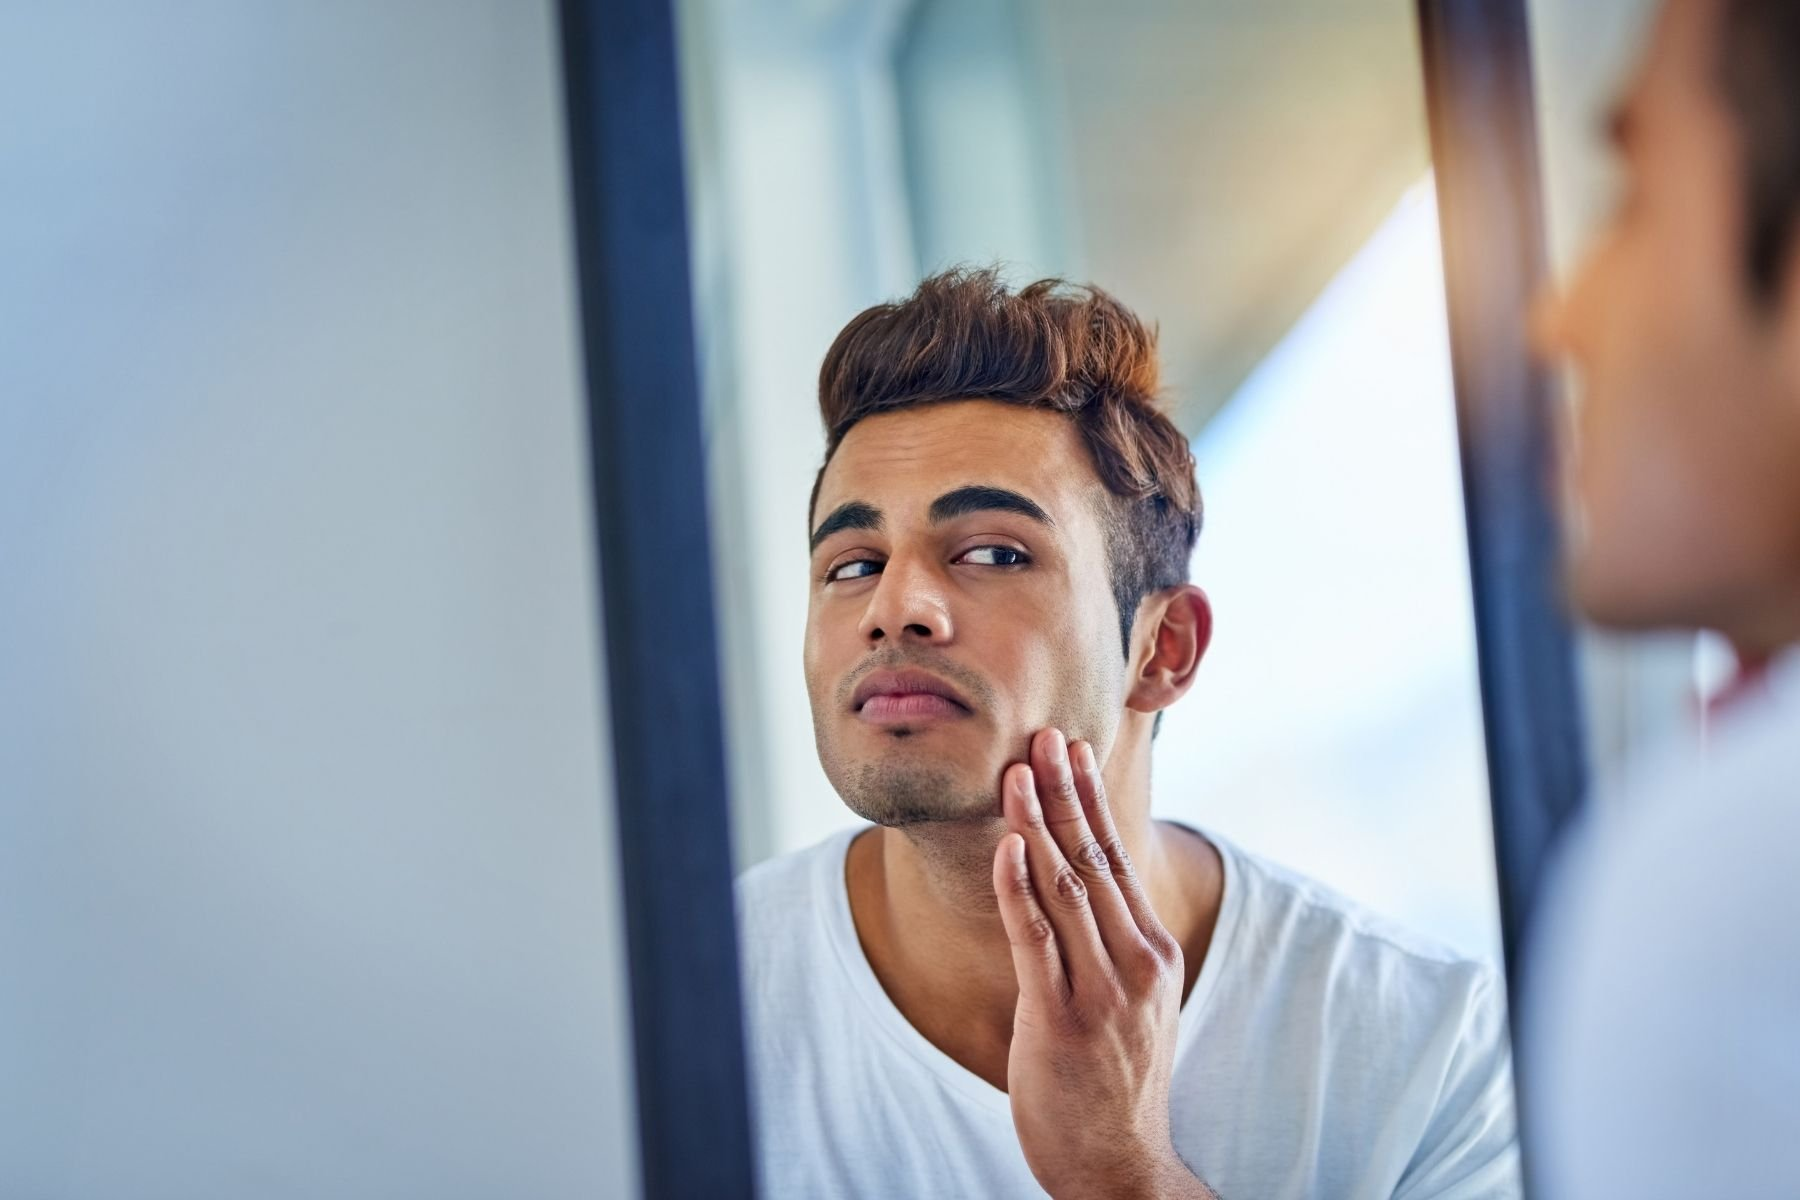 man looking for dry skin in the bathroom mirror before shaving